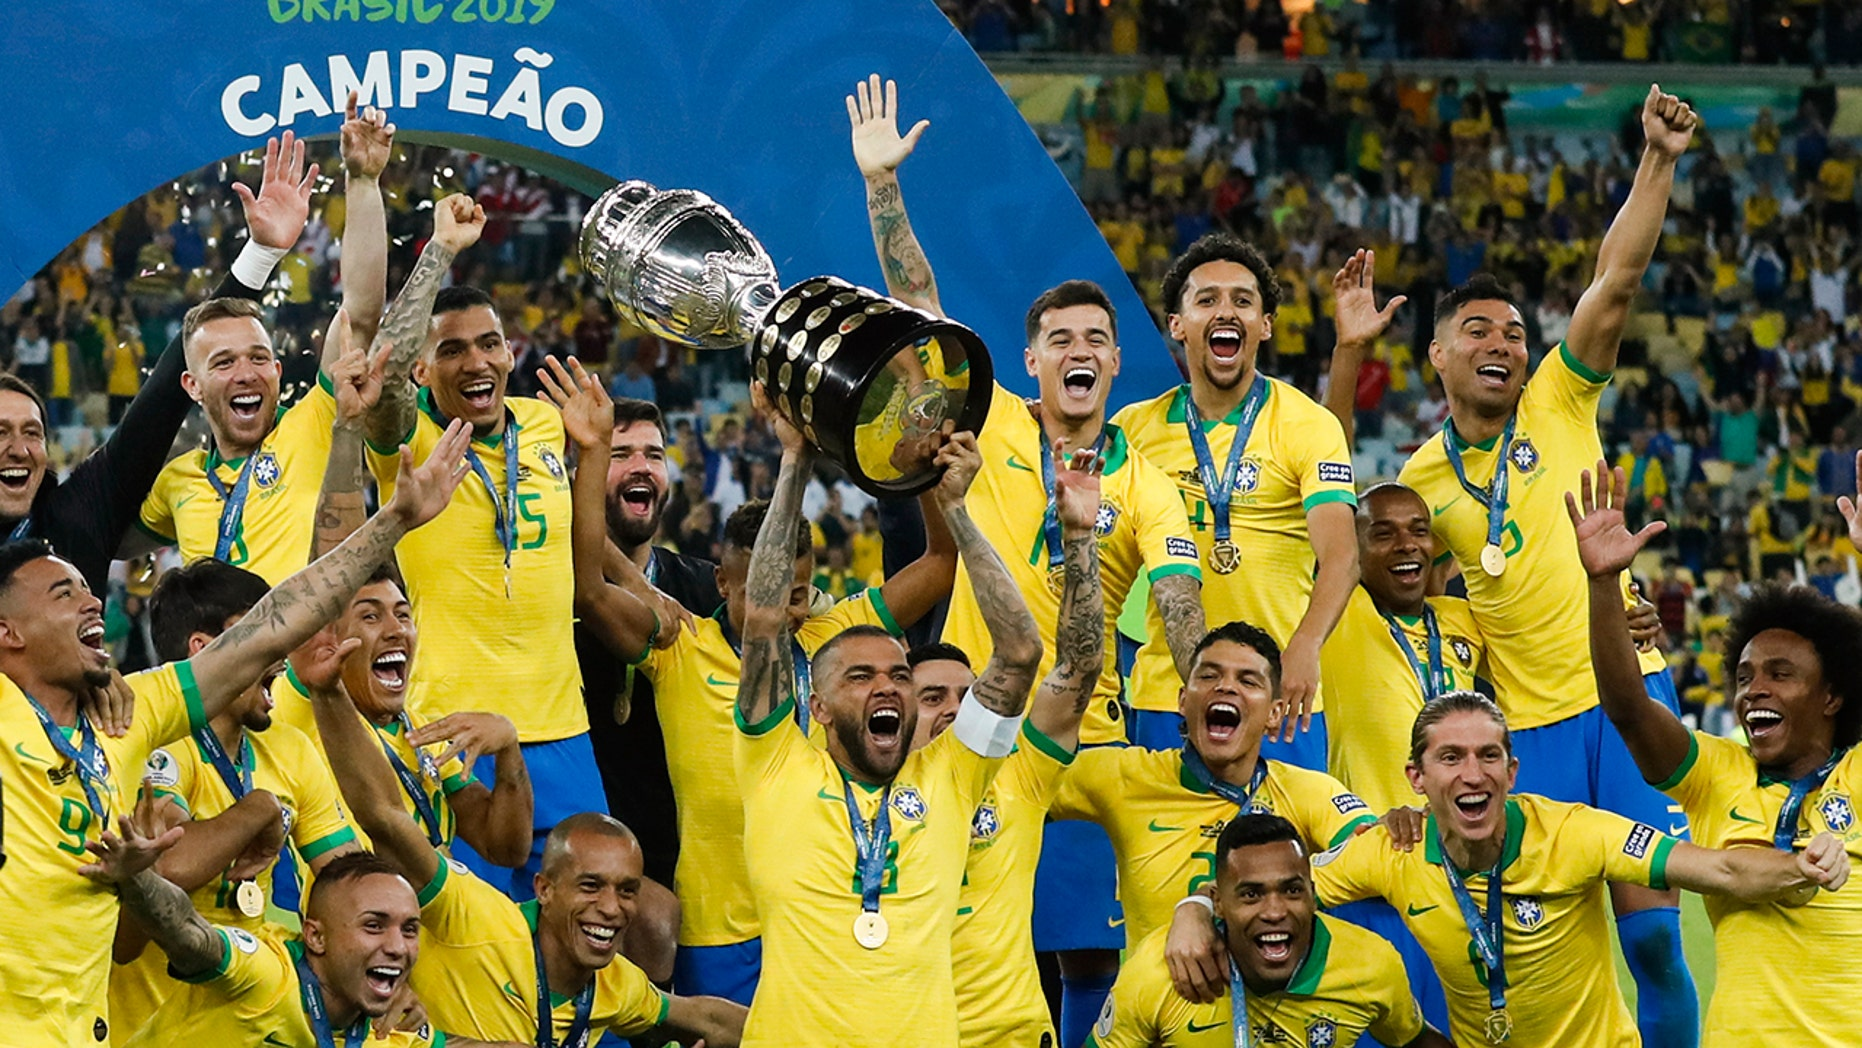 Brazil's Dani Alves rises adult his team's prize after winning a final soccer compare of a Copa America opposite Peru during a Maracana lane in Rio de Janeiro, Brazil, Sunday, Jul 7, 2019. Brazil won 3-1. (AP Photo/Victor R. Caivano)